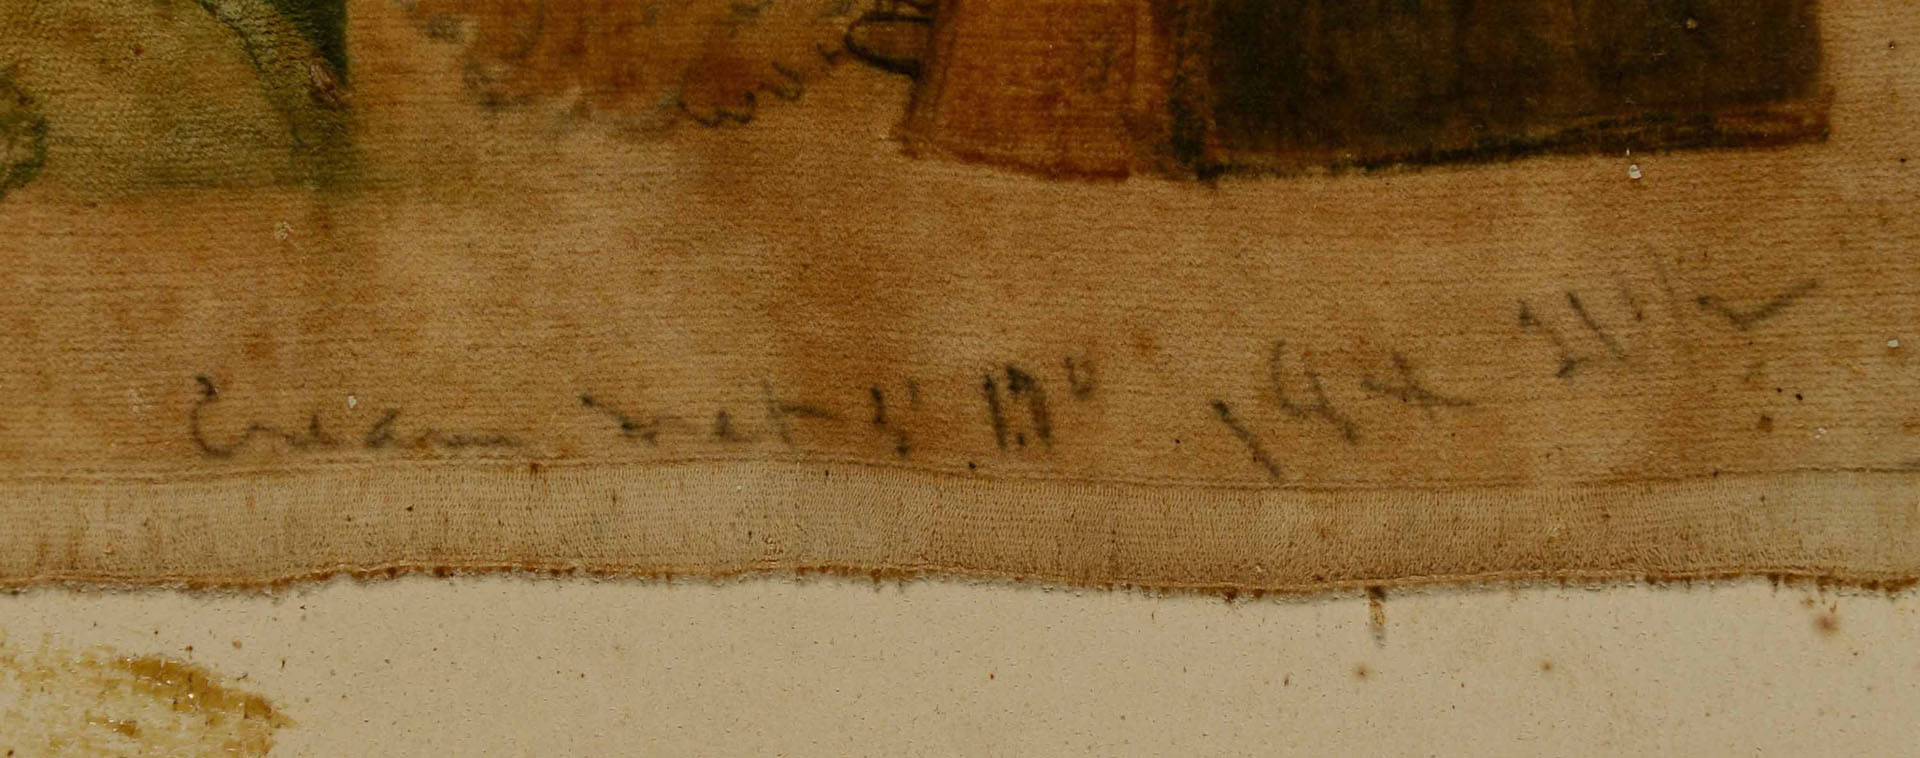 Lot 181: Salem, North Carolina Theorem on Velvet, Circa 182